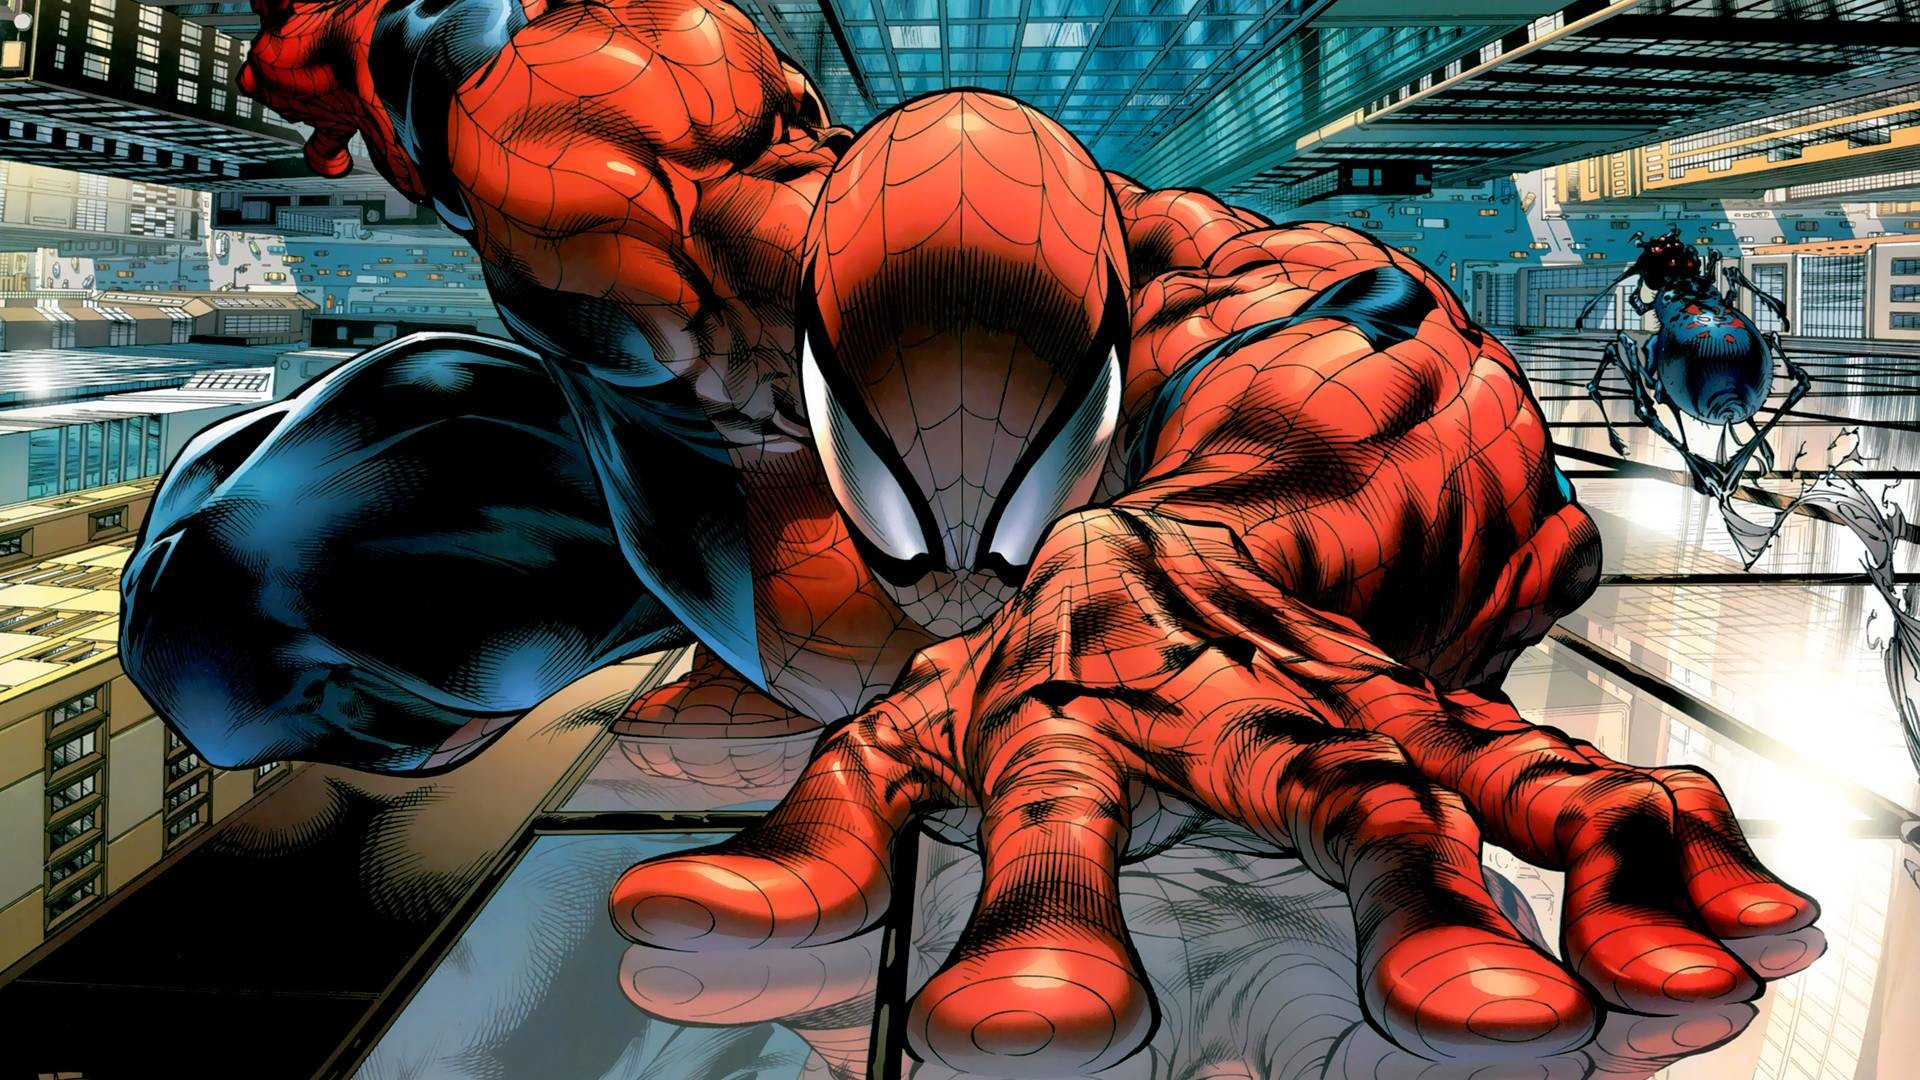 Art Print of SPIDERMAN – Wall Crawler. Wholesale prices on frames. Search  33 Million Art Prints, Posters, and Canvas Wall Art Pieces at Barewalls.